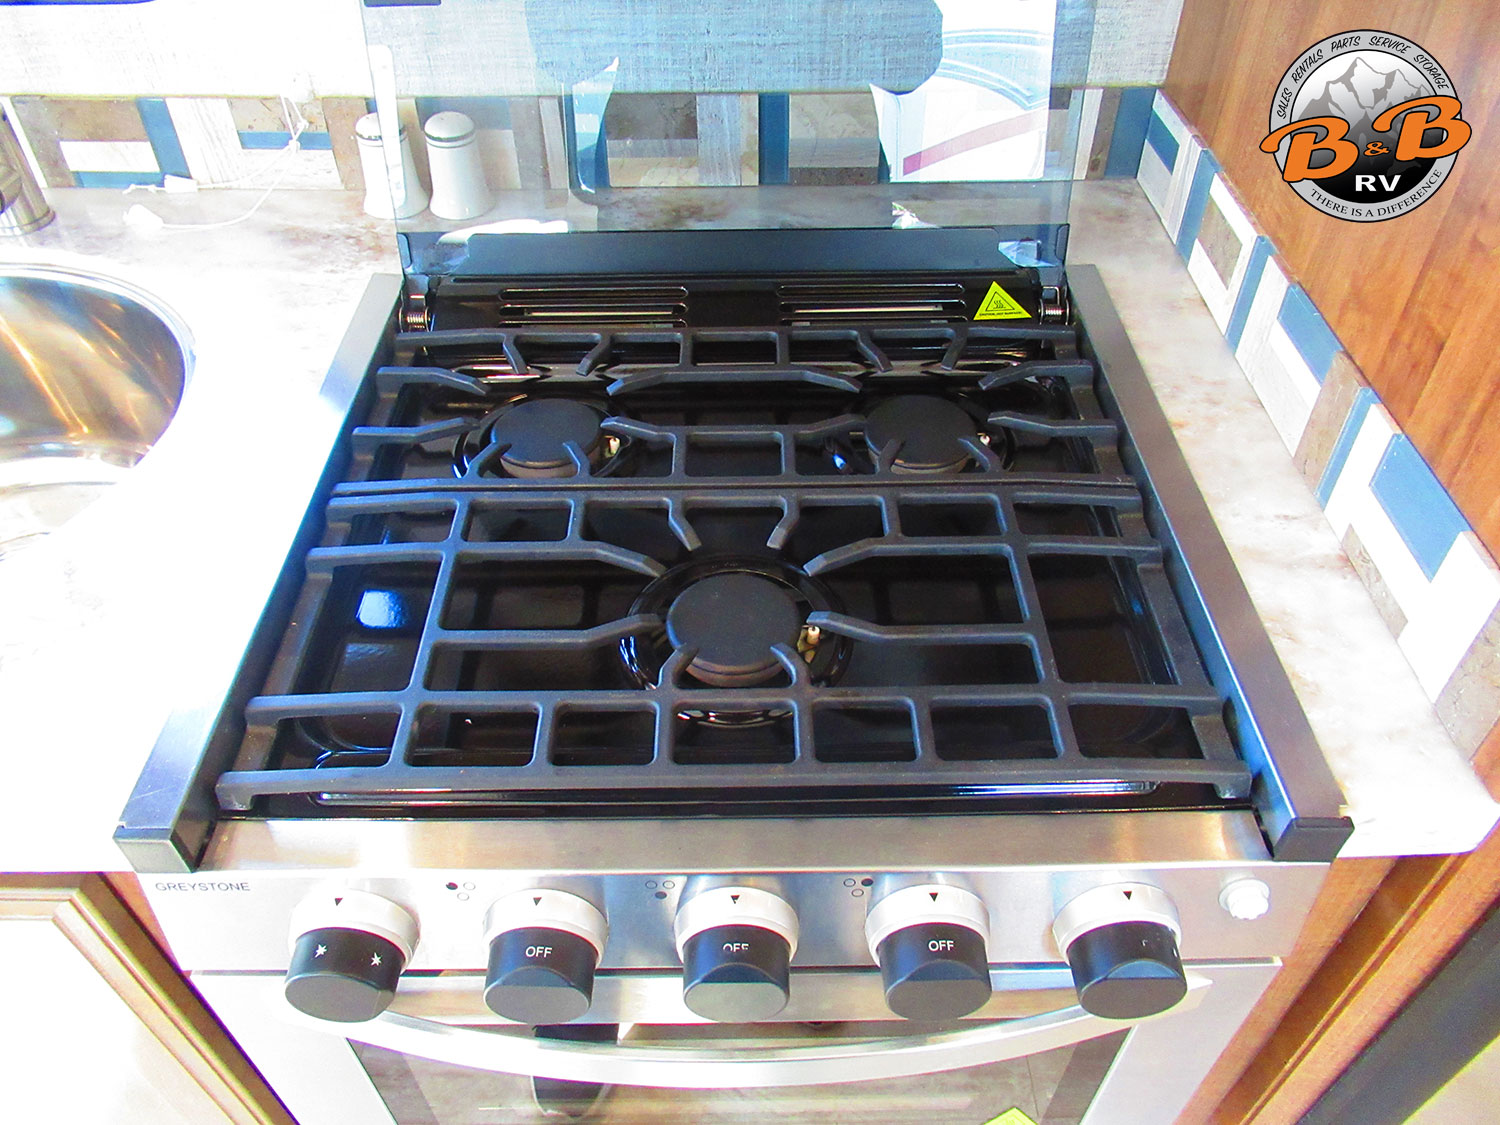 2020 Gulf Stream Conquest 6320 Stove